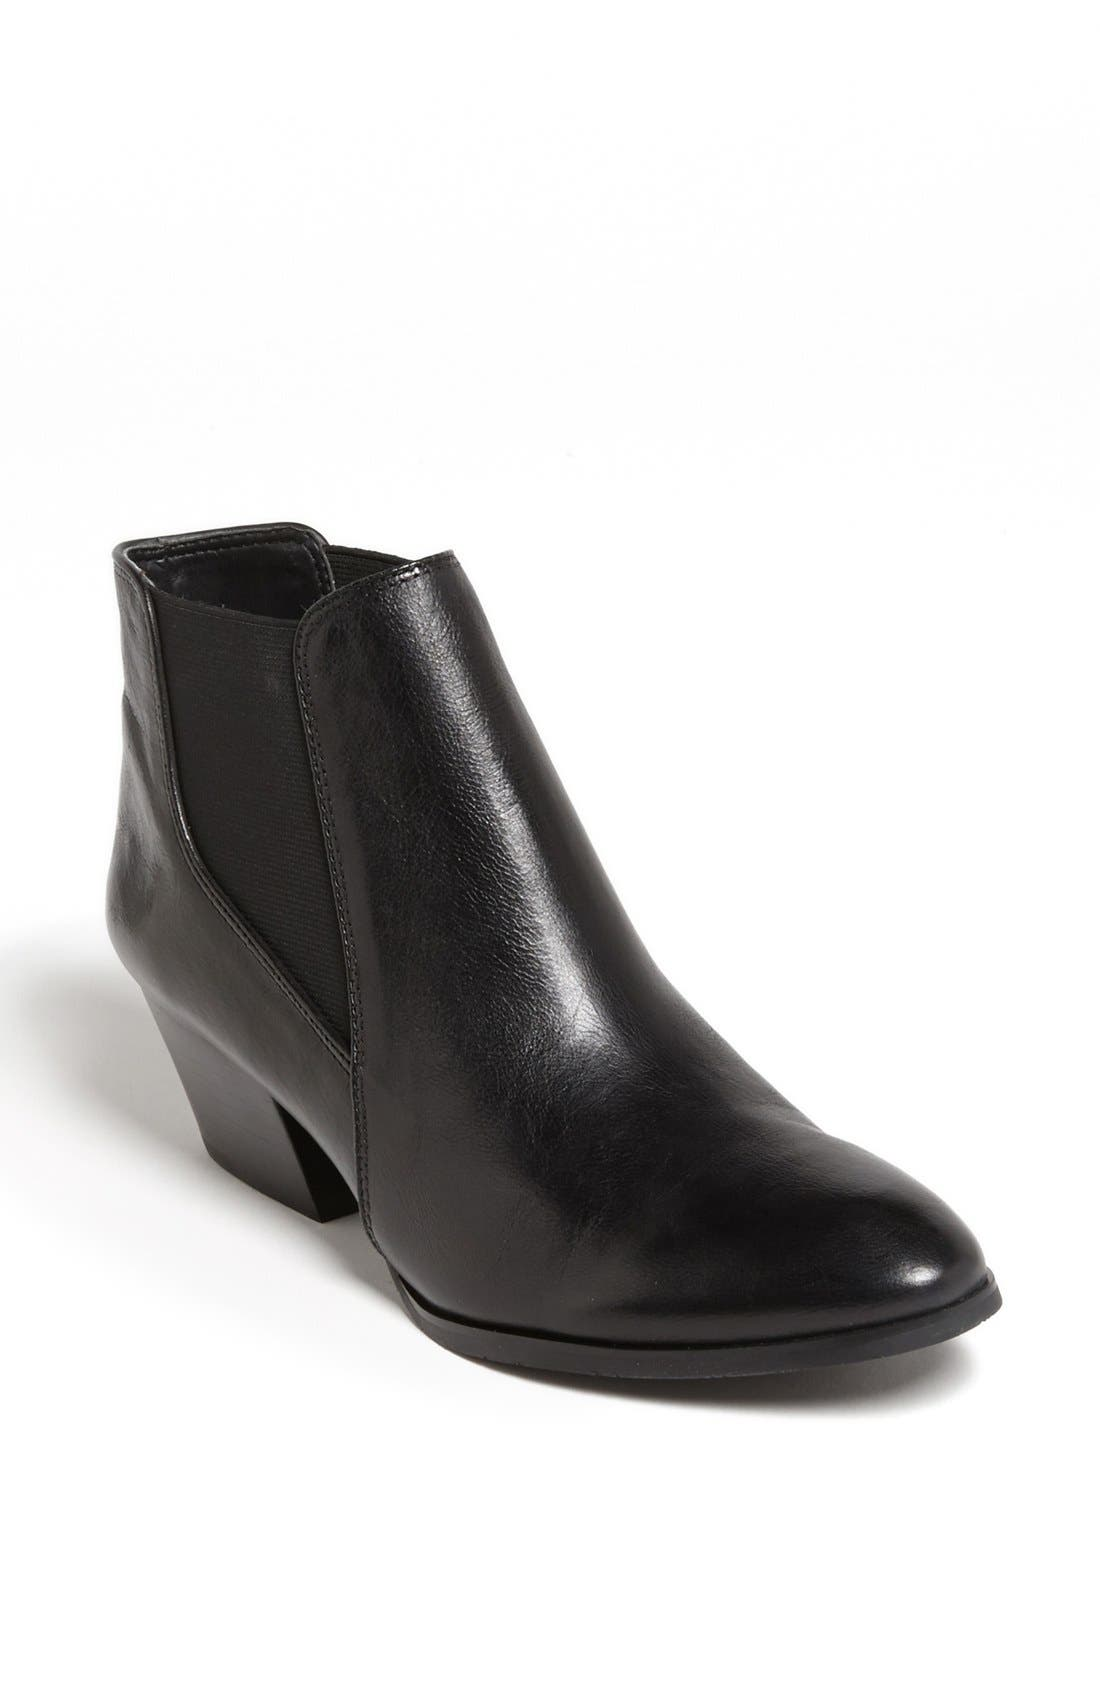 Alternate Image 1 Selected - Franco Sarto 'Quinne' Boot